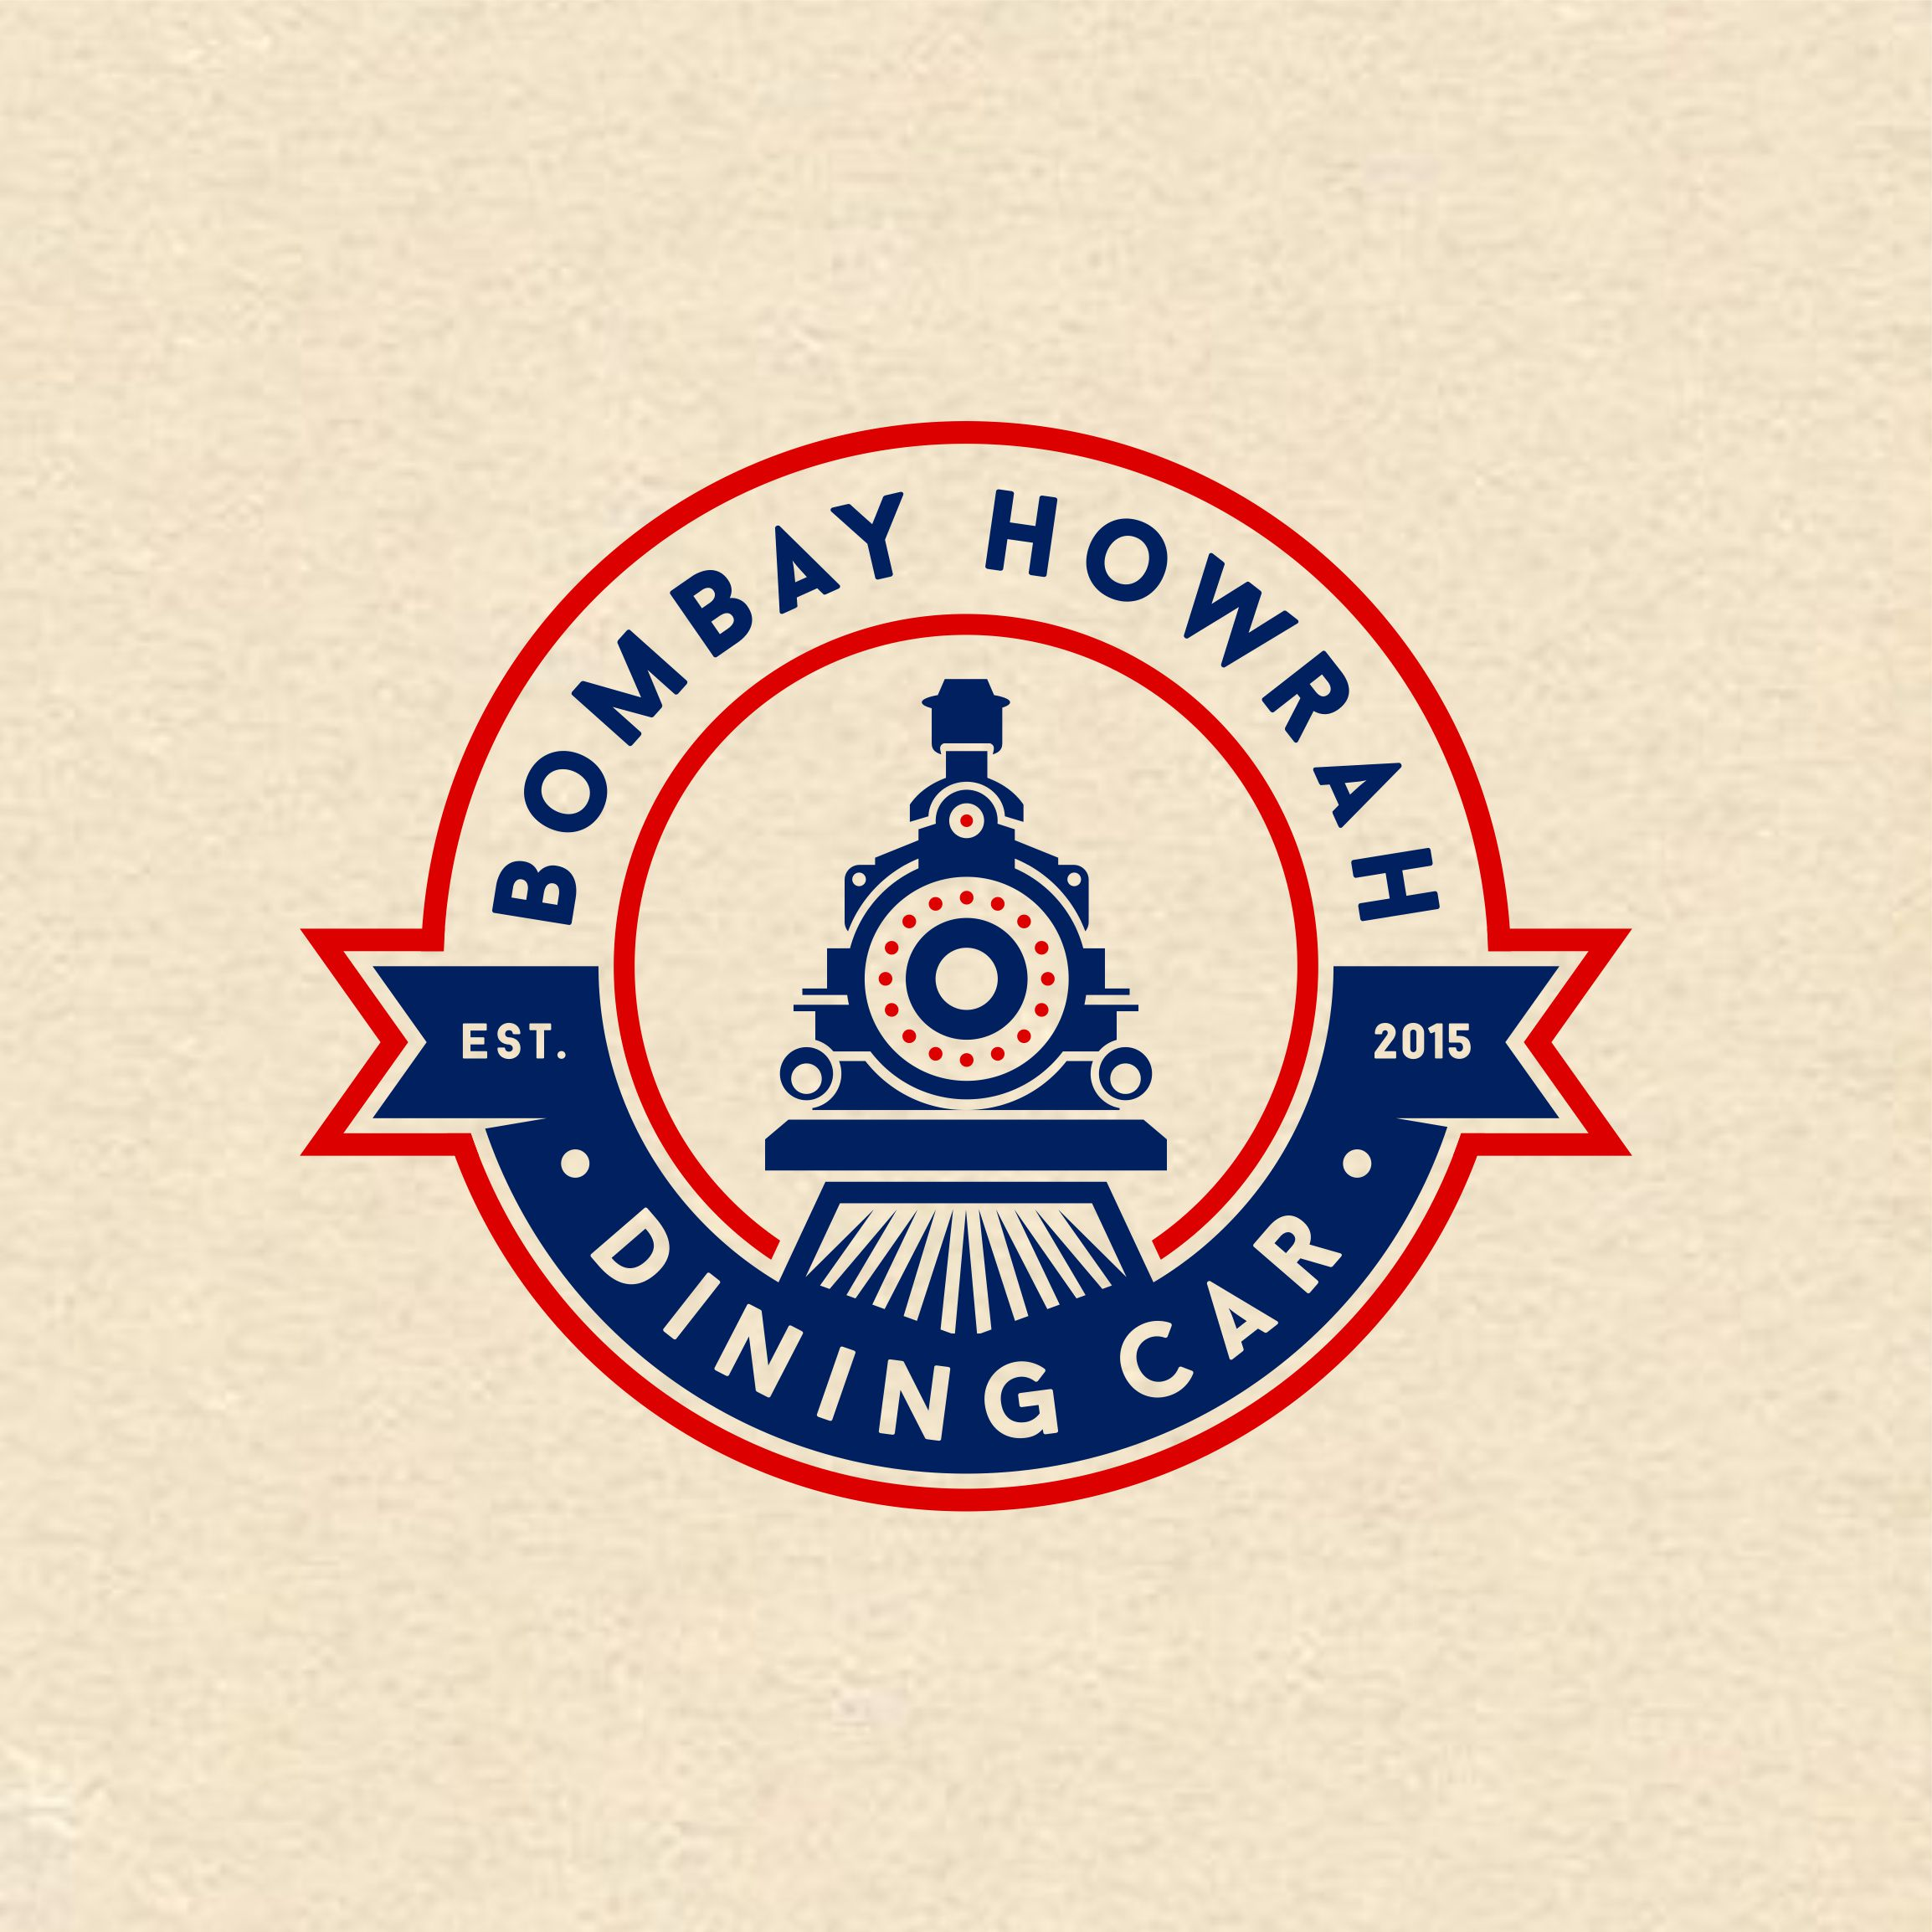 Bombay Howrah Dining Car